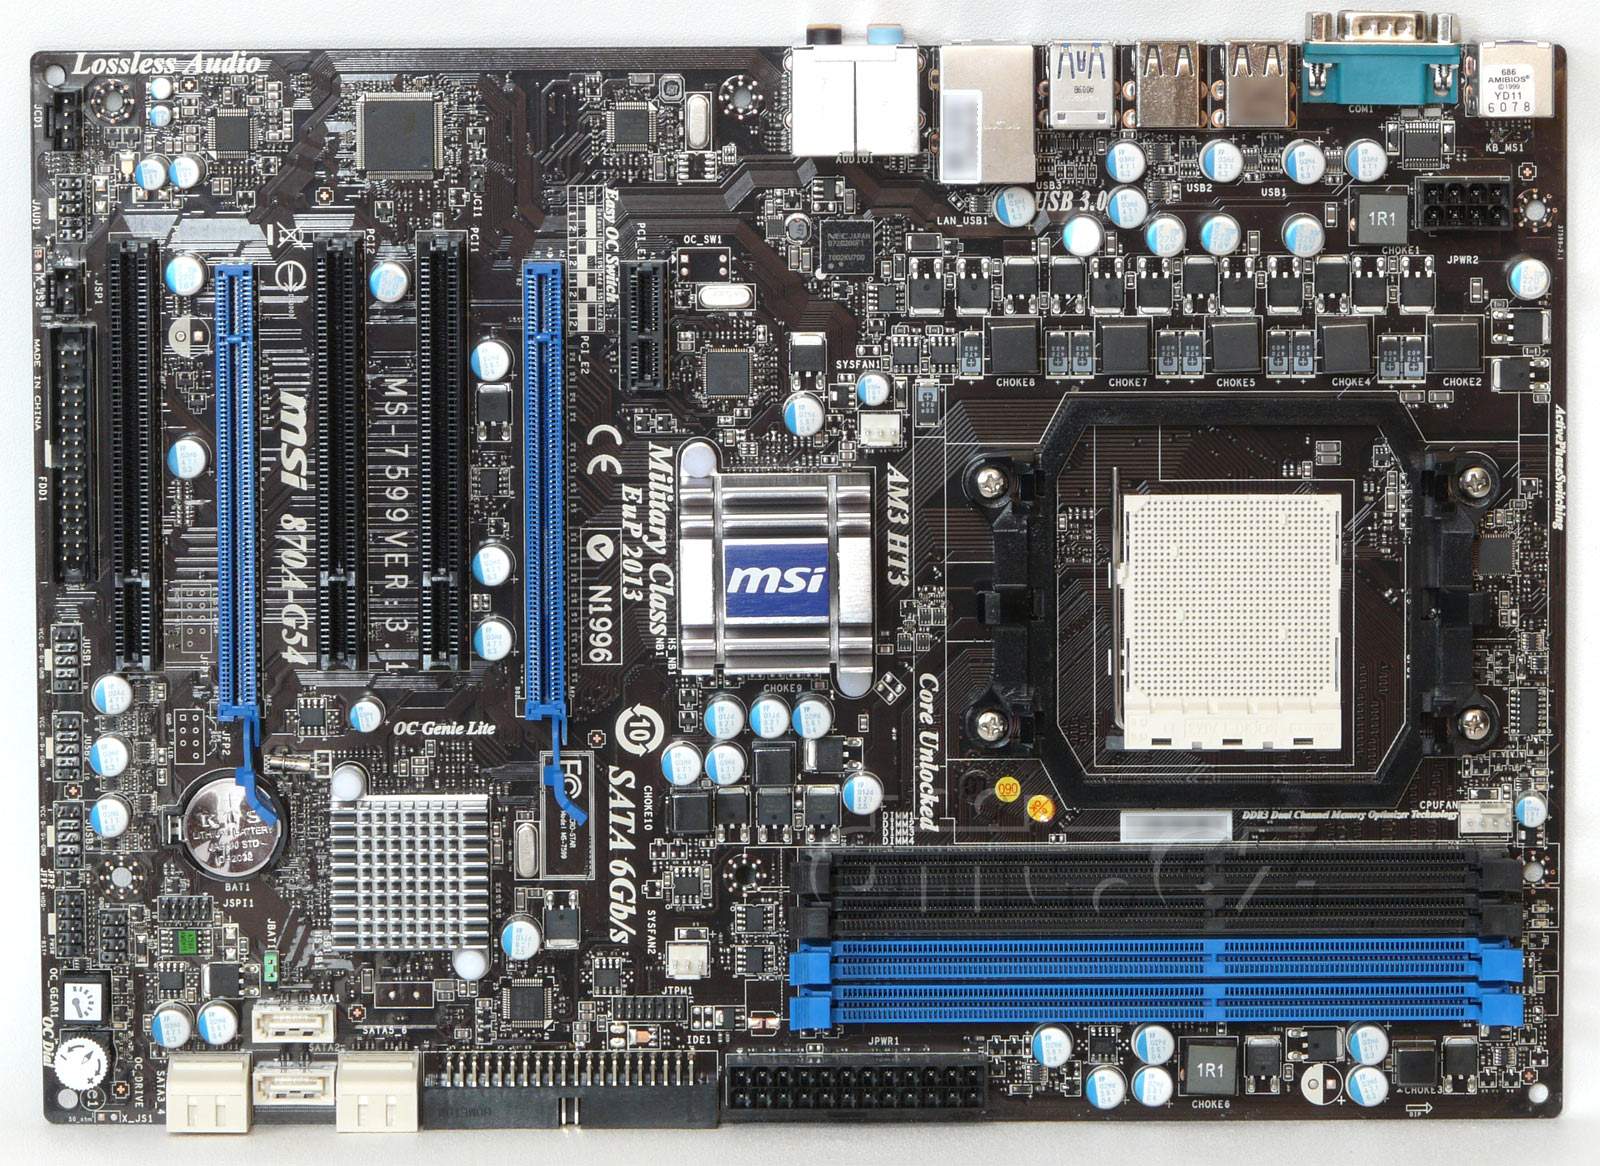 MSI 870A-G54 RENESAS USB 3.0 DRIVER FOR PC